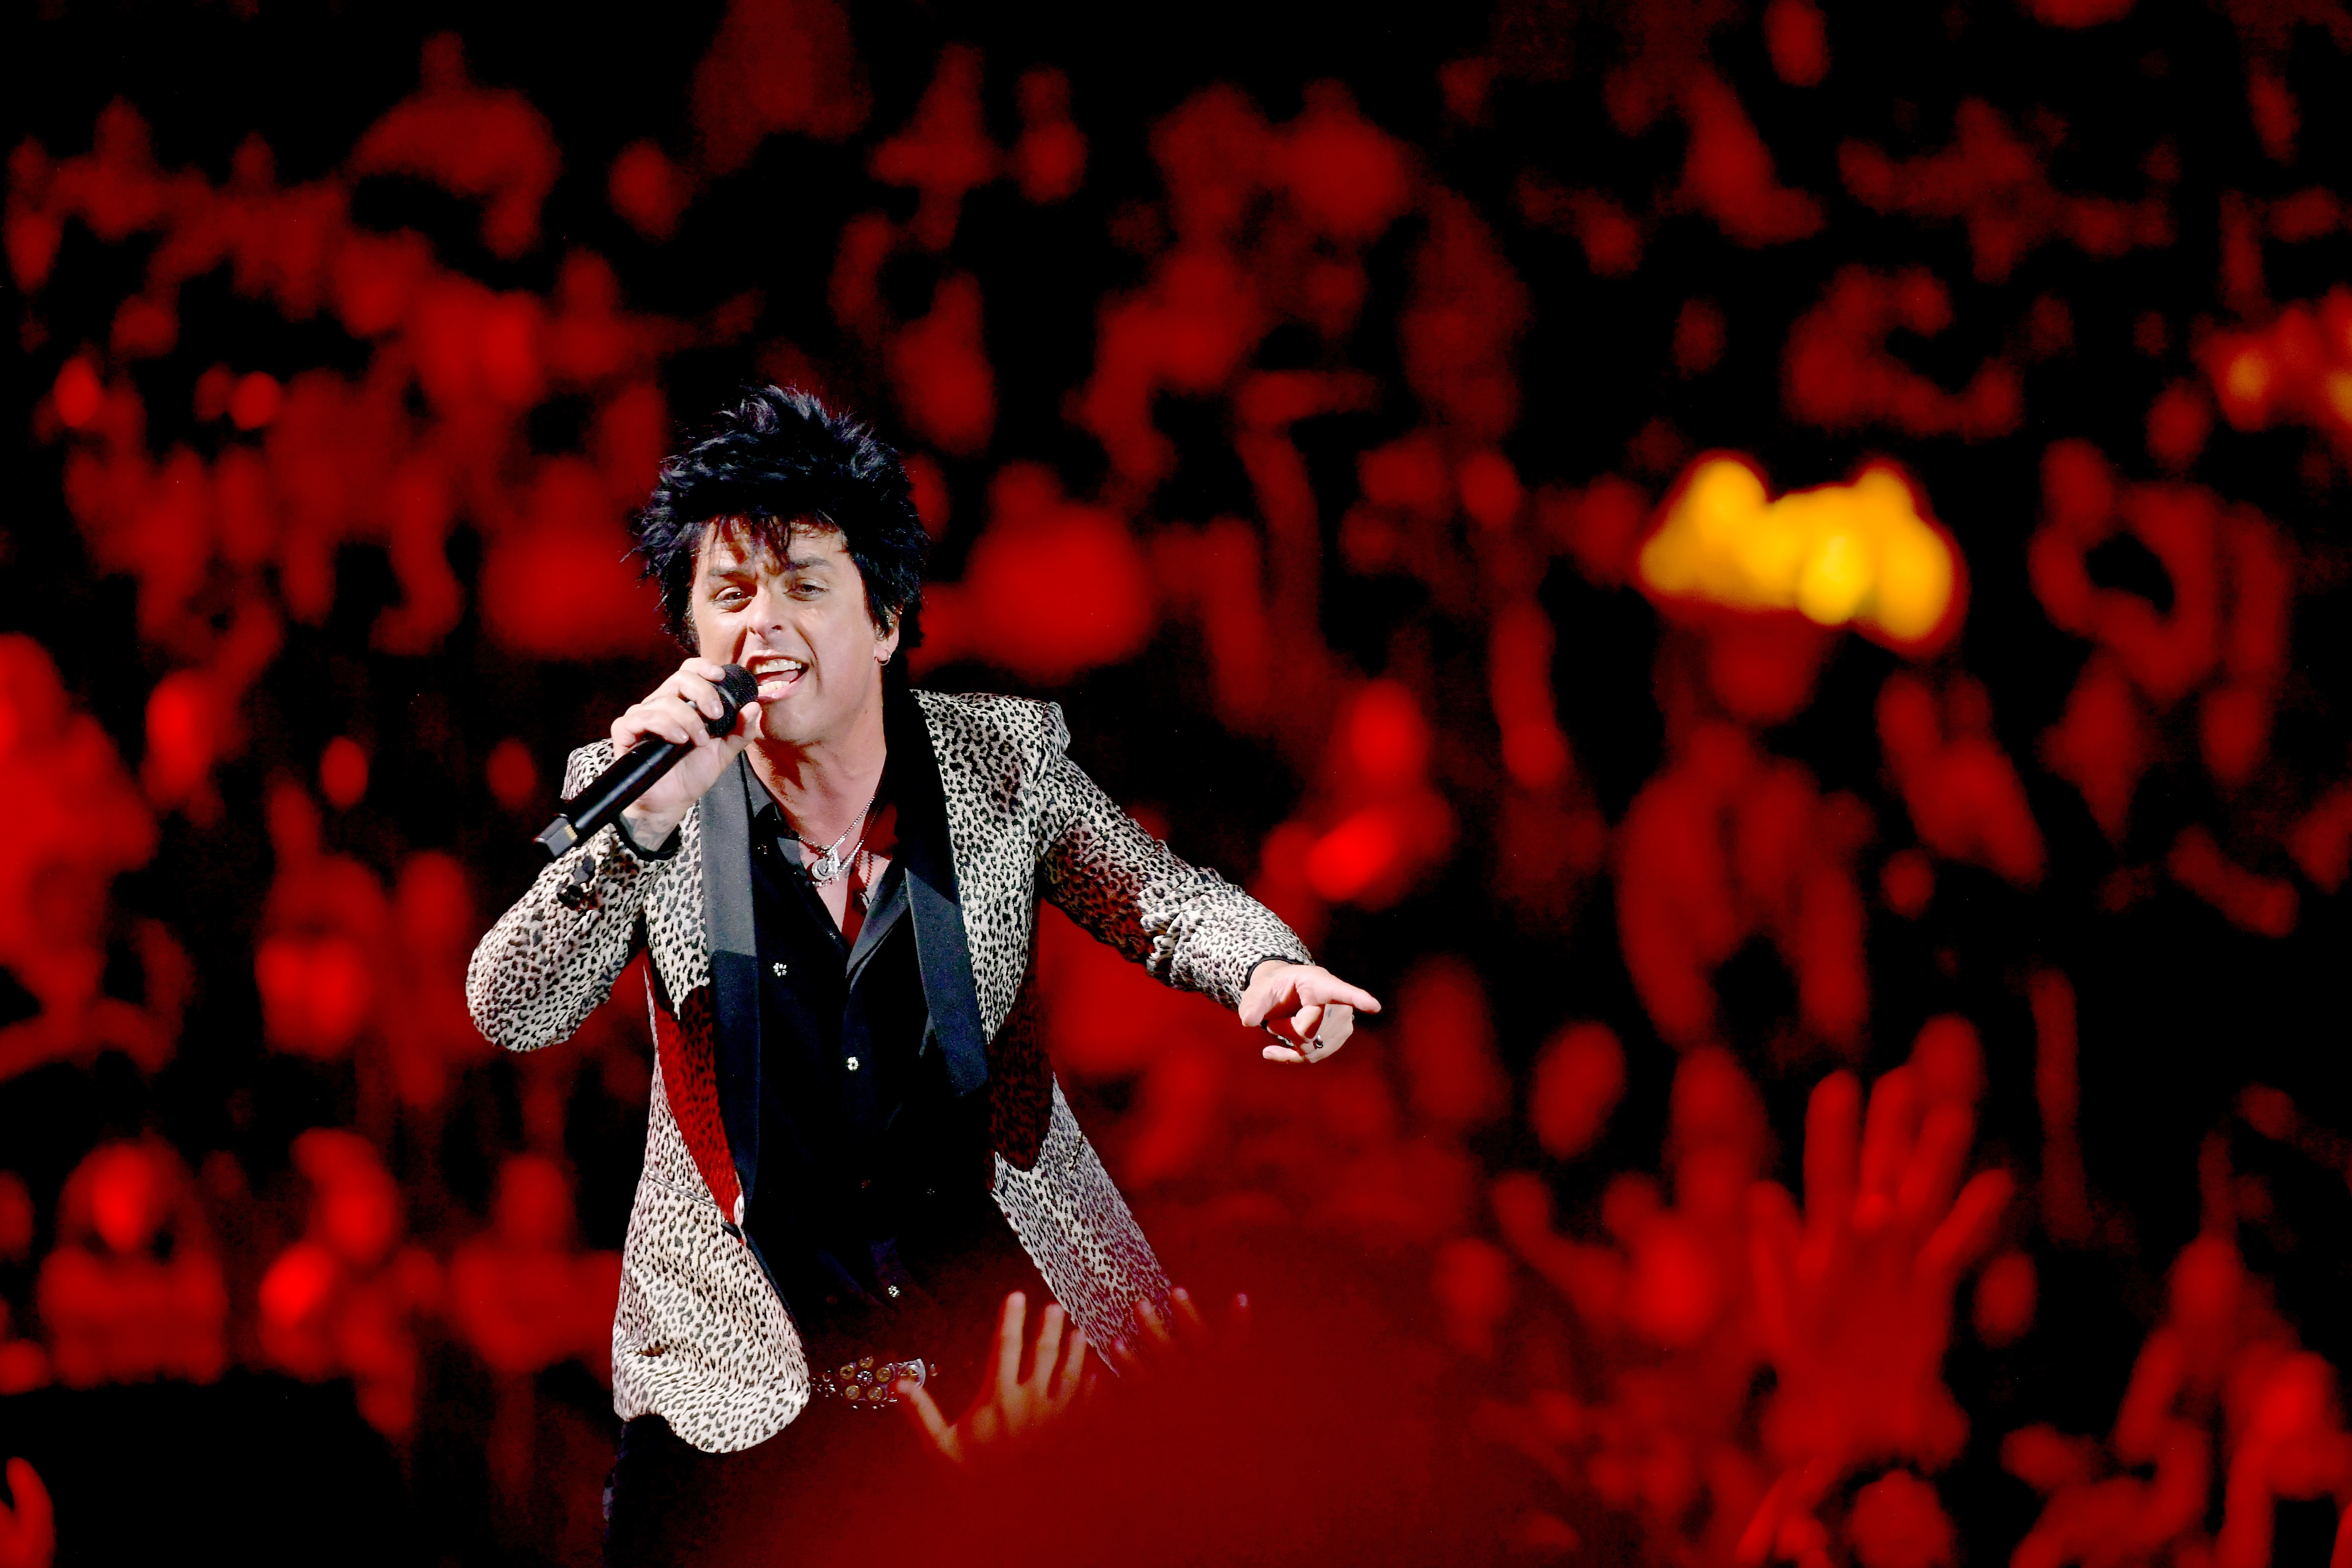 Billie Joe Armstrong of Green Day performs at the iHeartRadio festival on September 20, 2019